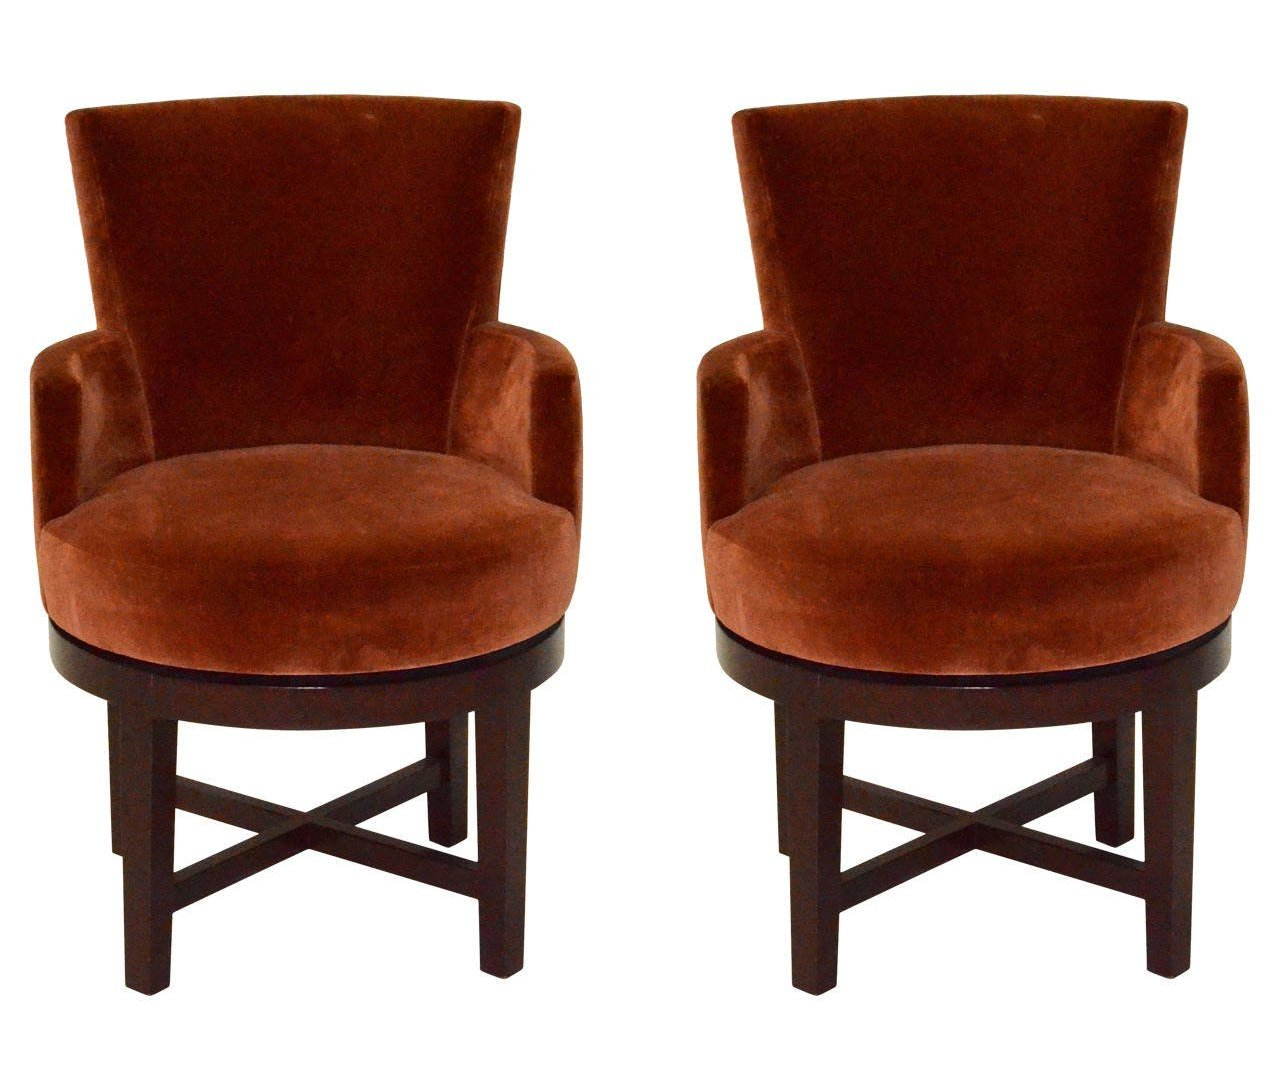 a rudin swivel chairs 17